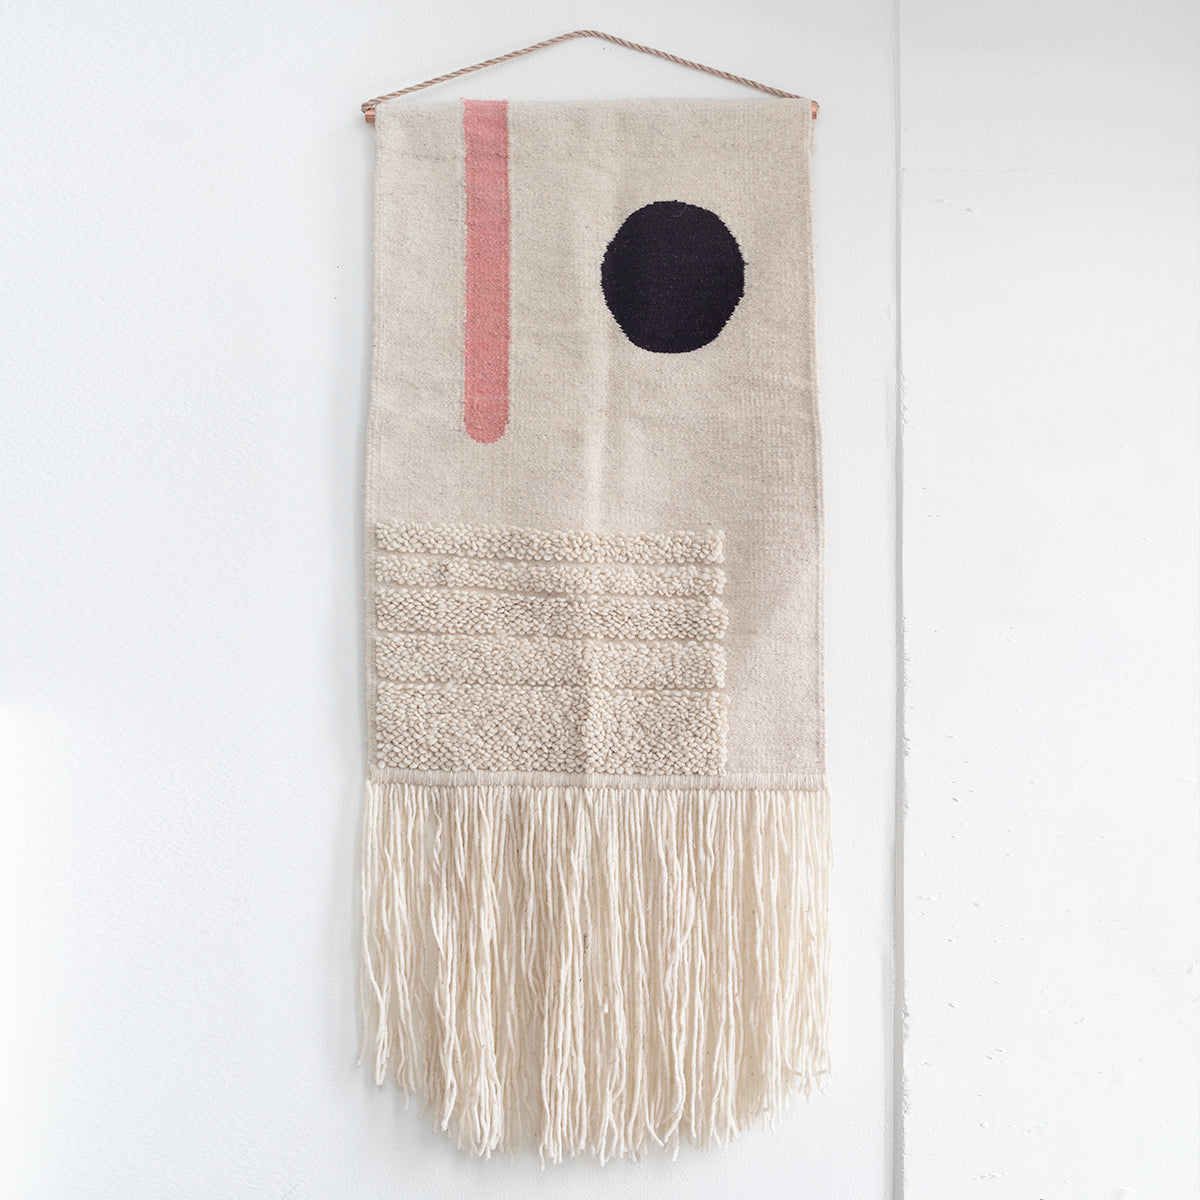 "TAPESTRY HAND WOVEN WALL HANGING ""EL SOL"" BY CURA COLLECTION"